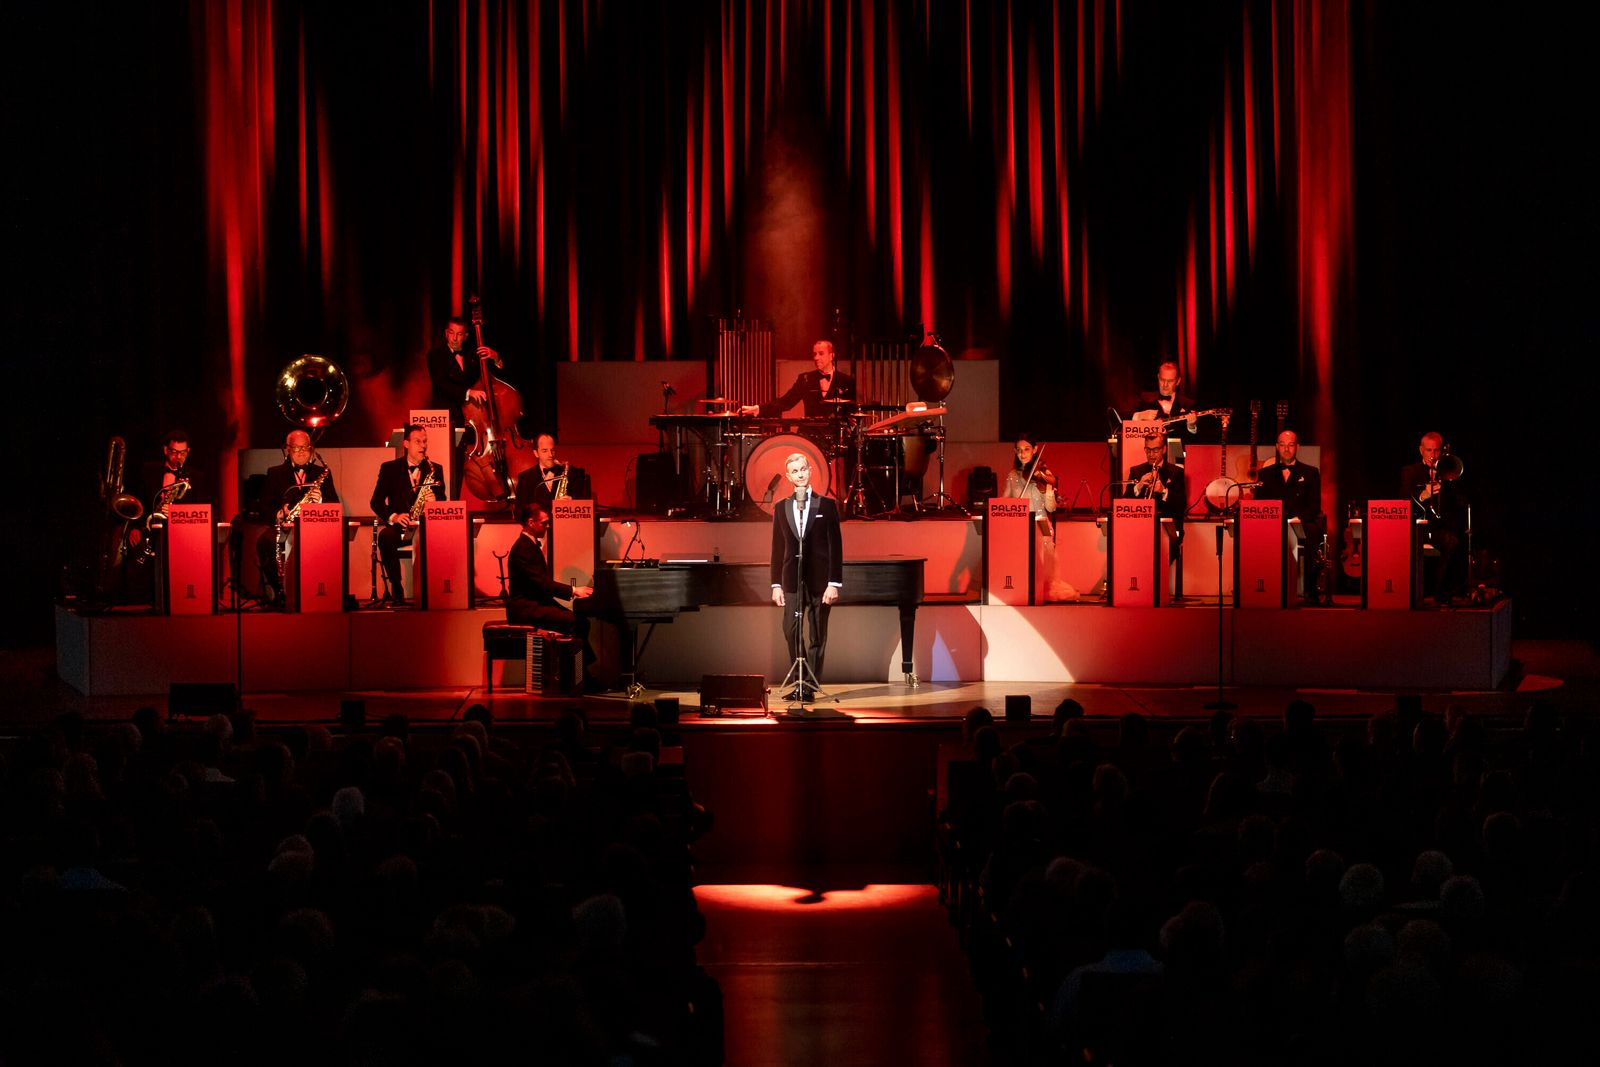 Max Raabe & Palast Orchester - Guten Tag, liebes Glueck , 25.01.20 Luebeck Schleswig-Holstein Germany MuK *** Max Raabe